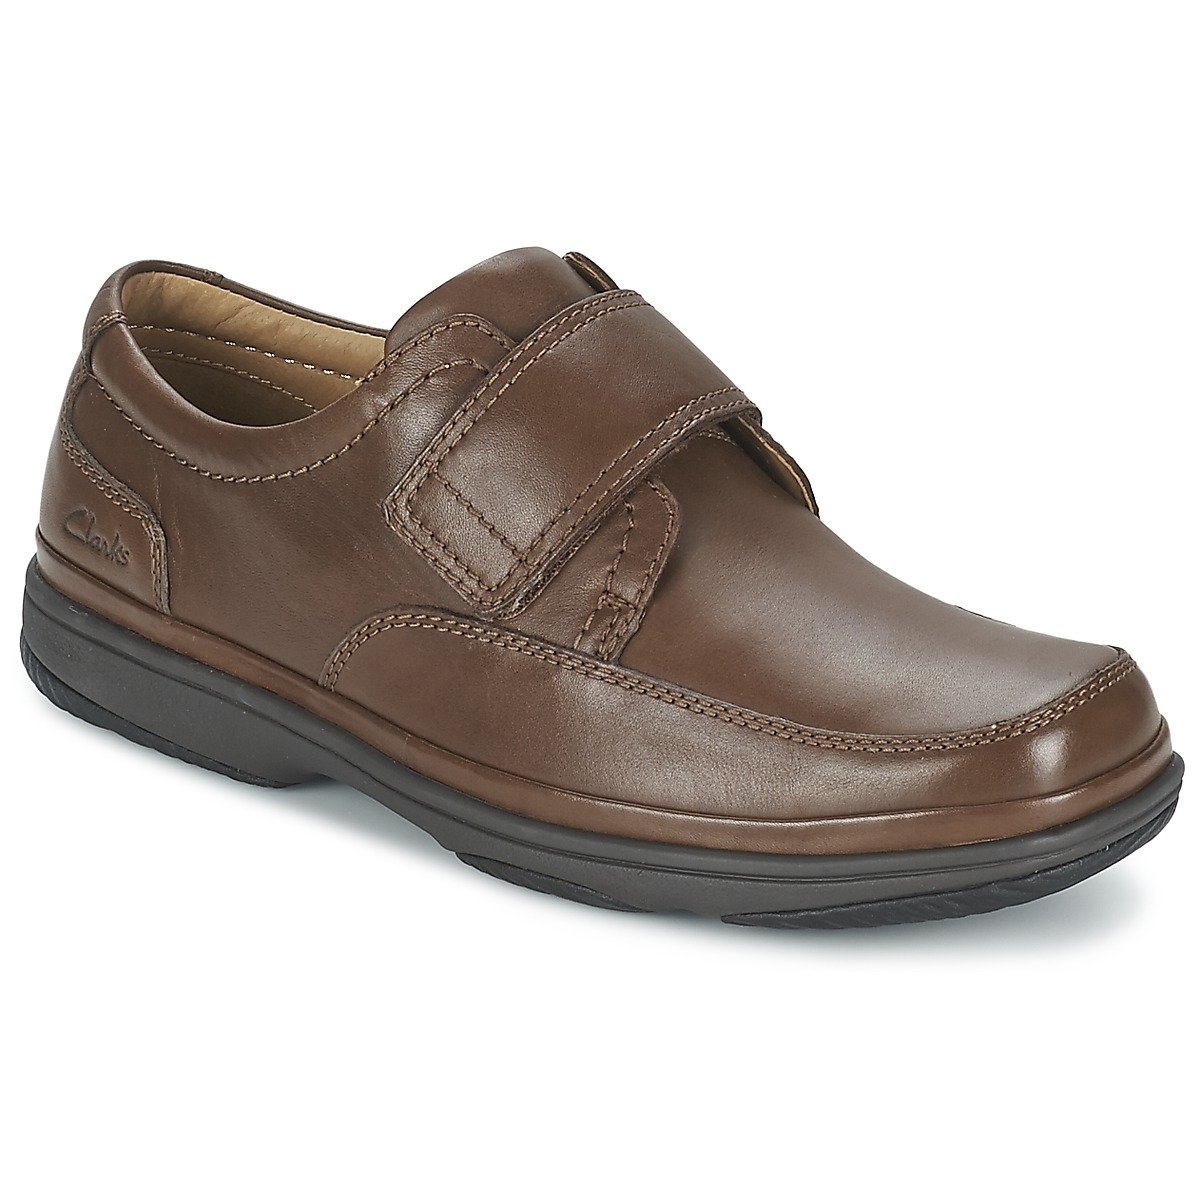 35627770635ea Clarks 1336-48H Swift Turn Brown Mens Casual Shoes: Amazon.co.uk: Shoes &  Bags